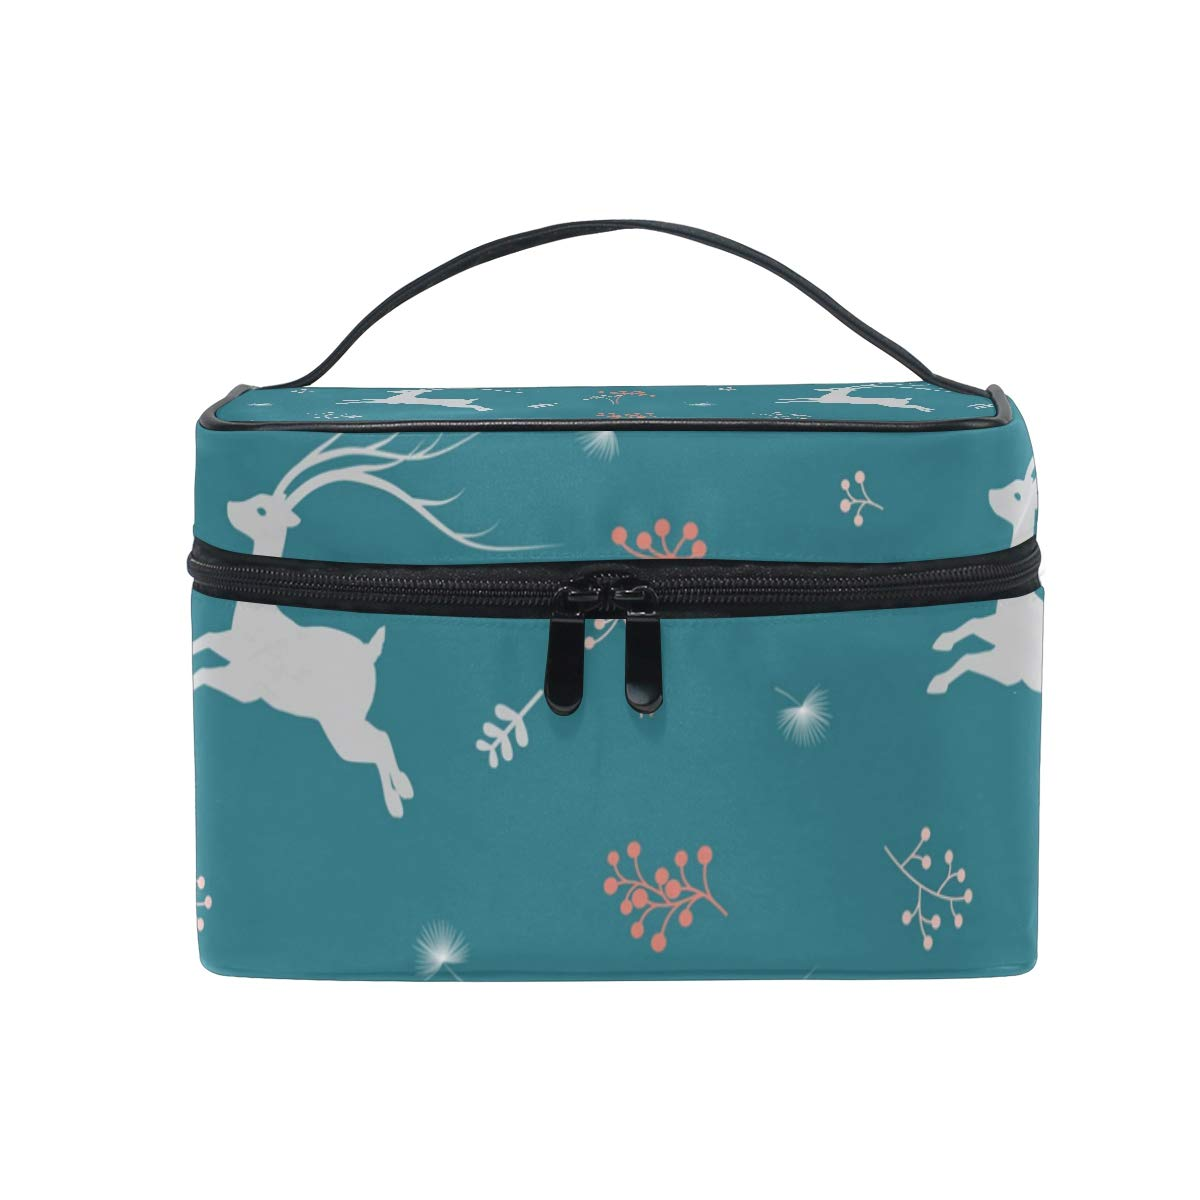 SAVSV Cosmetic Bag, Deer And Wildflower Travel Makeup Organizer Bag Cosmetic Case Portable Train Case for Women Girls